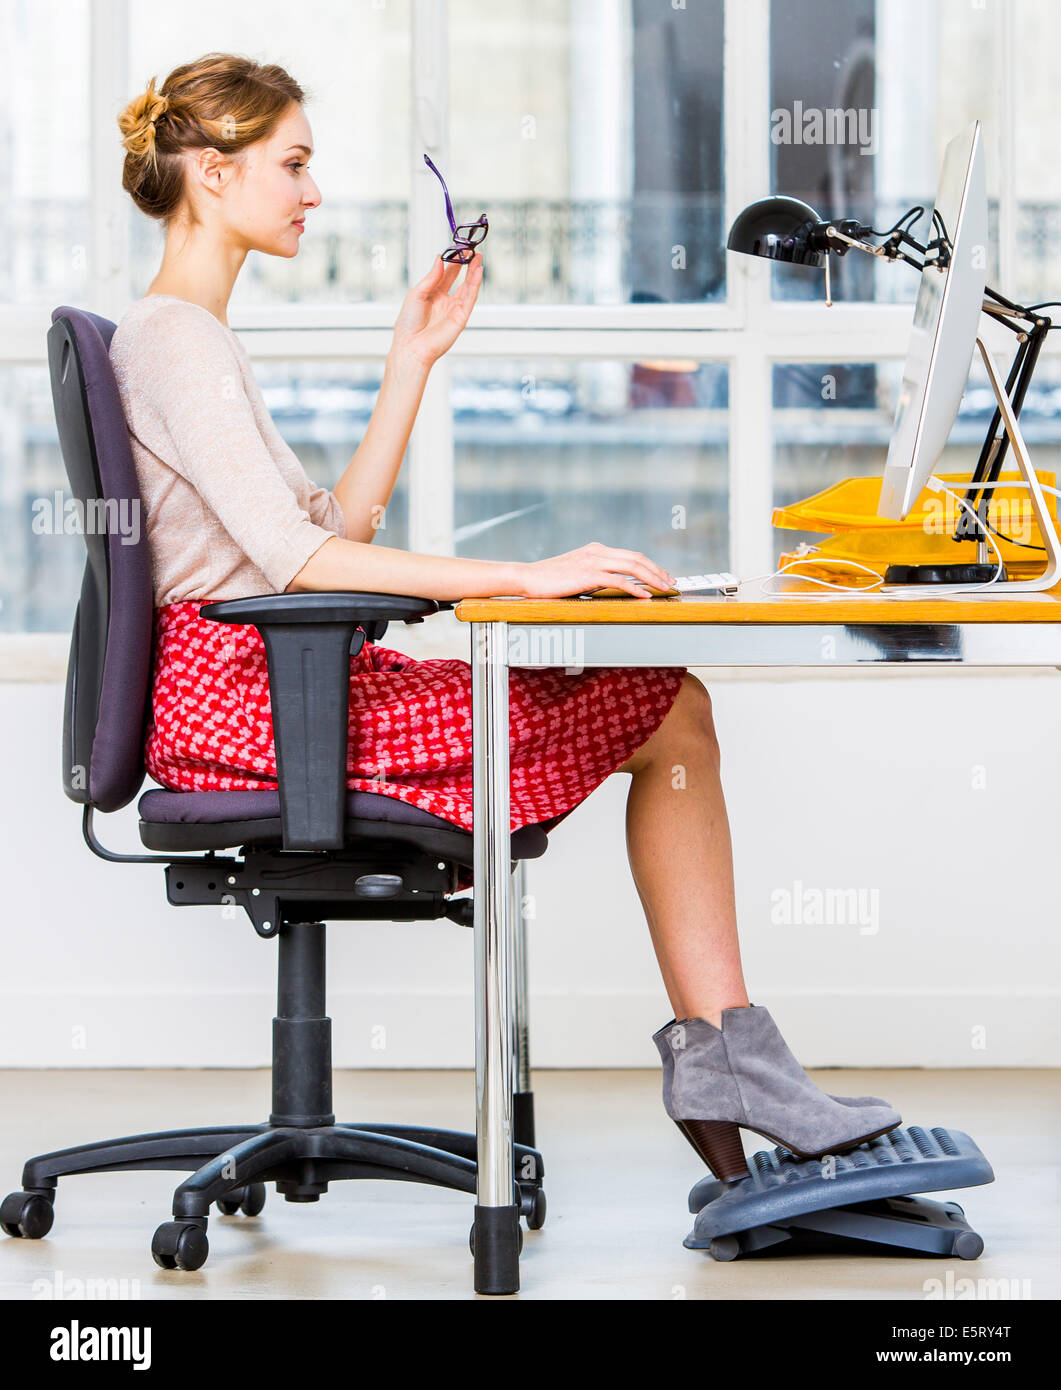 Right posture for working at a computer. - Stock Image